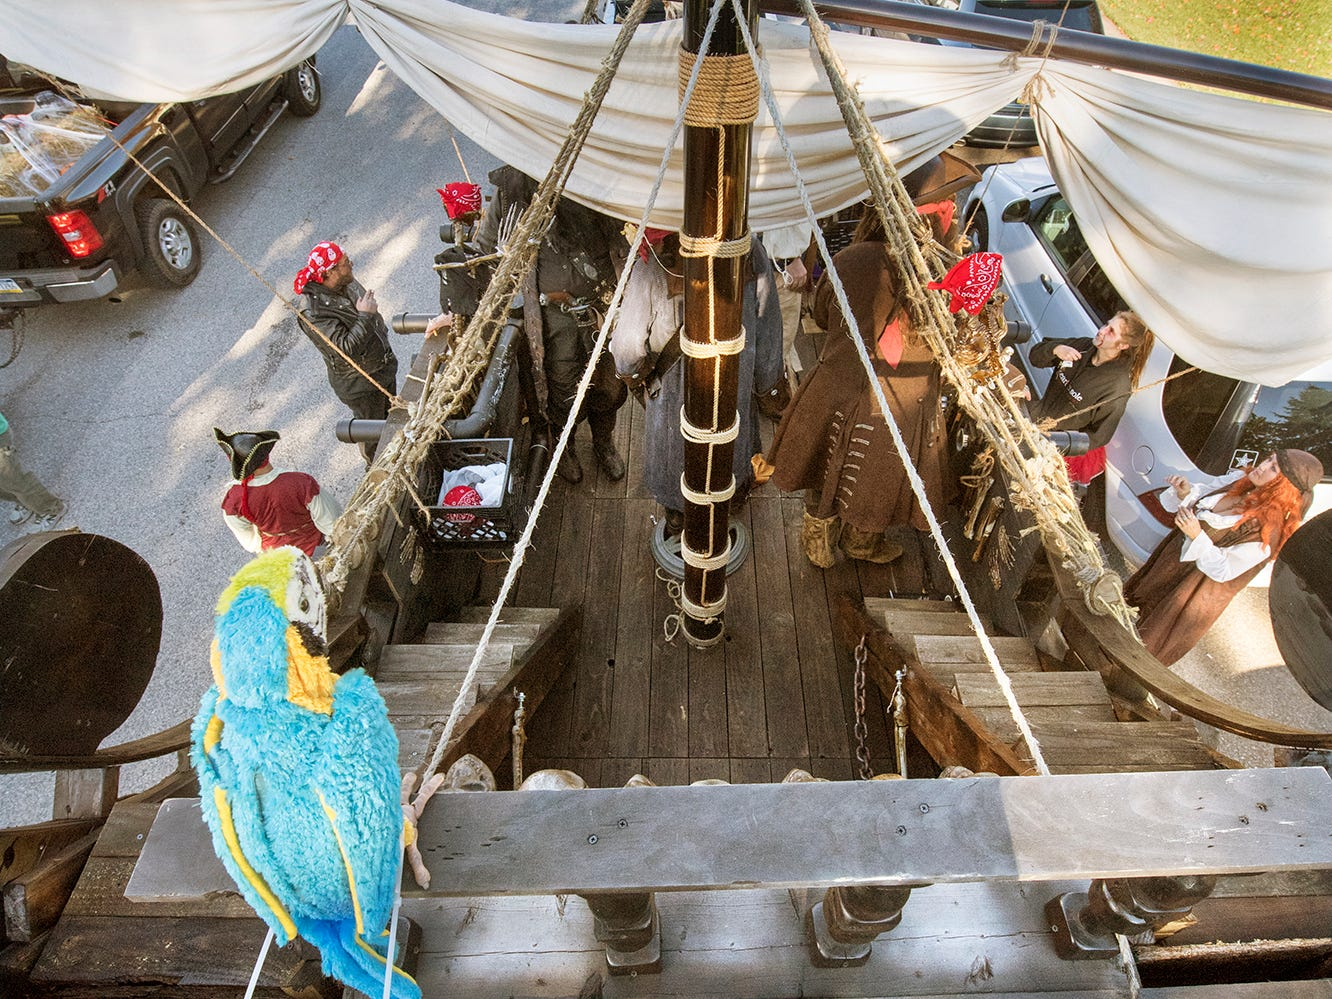 A parrot was perched on the top deck of the Rosbrook pirate ship during the 53rd Annual Manchester/Mt. Wolf Halloween Parade.